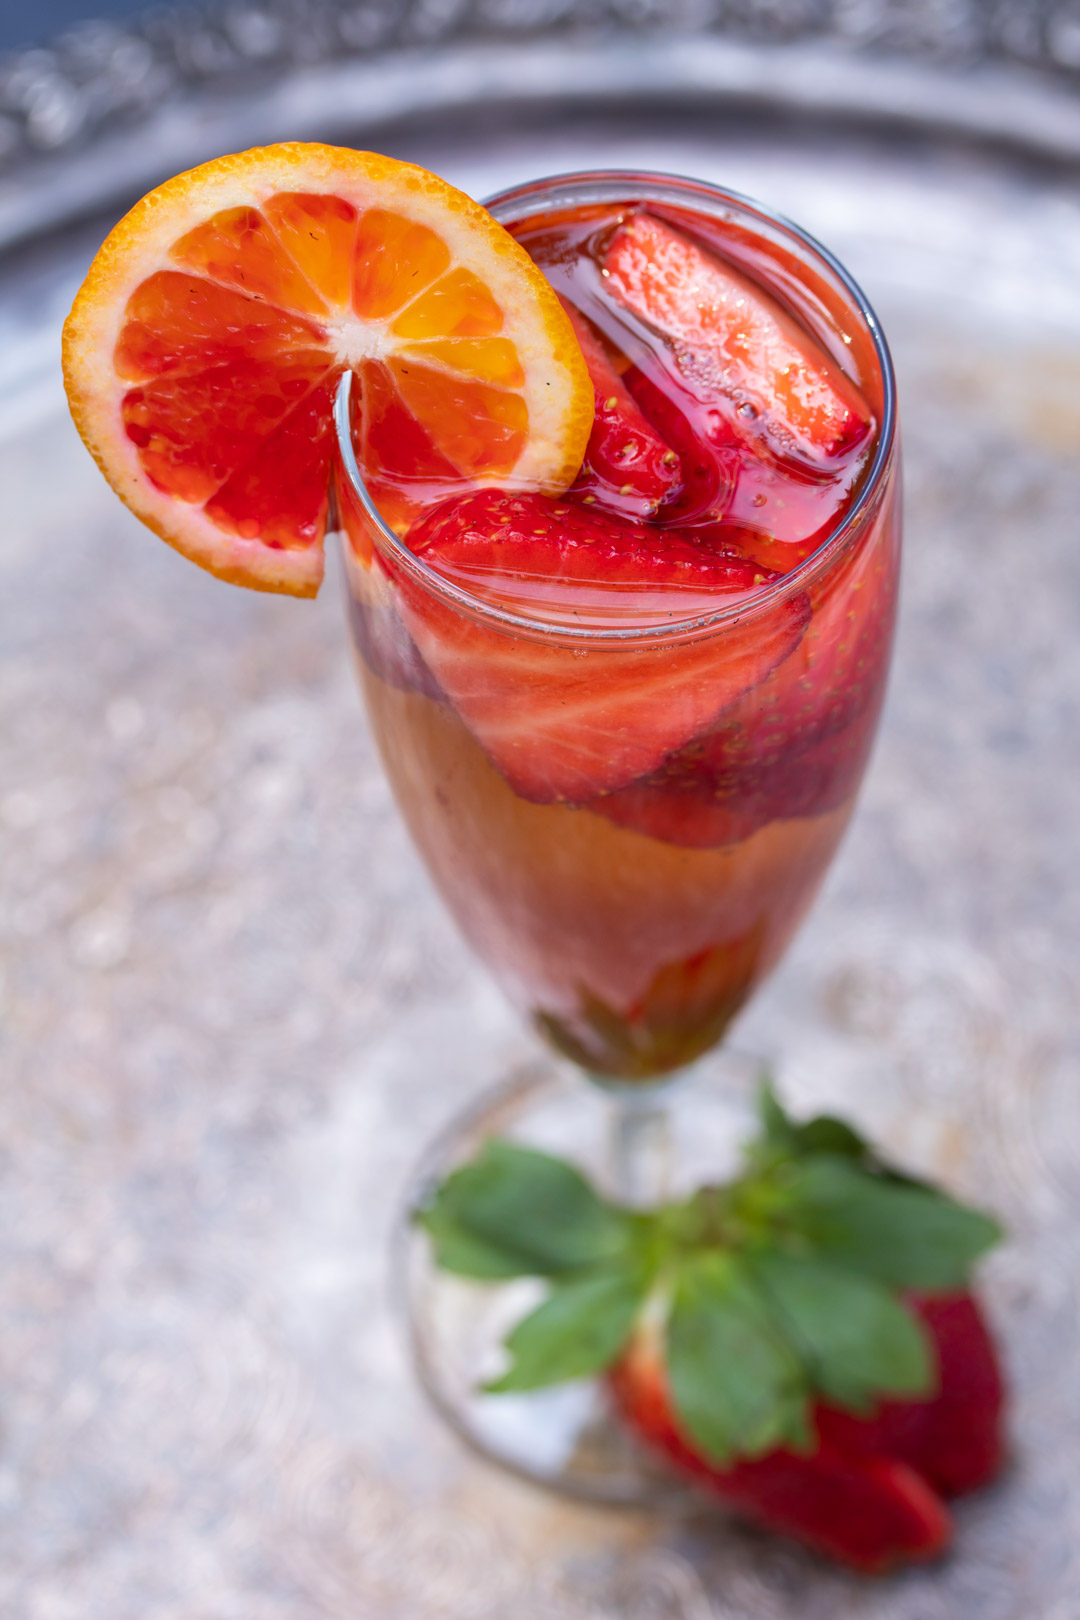 blood orange shrub and strawberry champagne cocktail